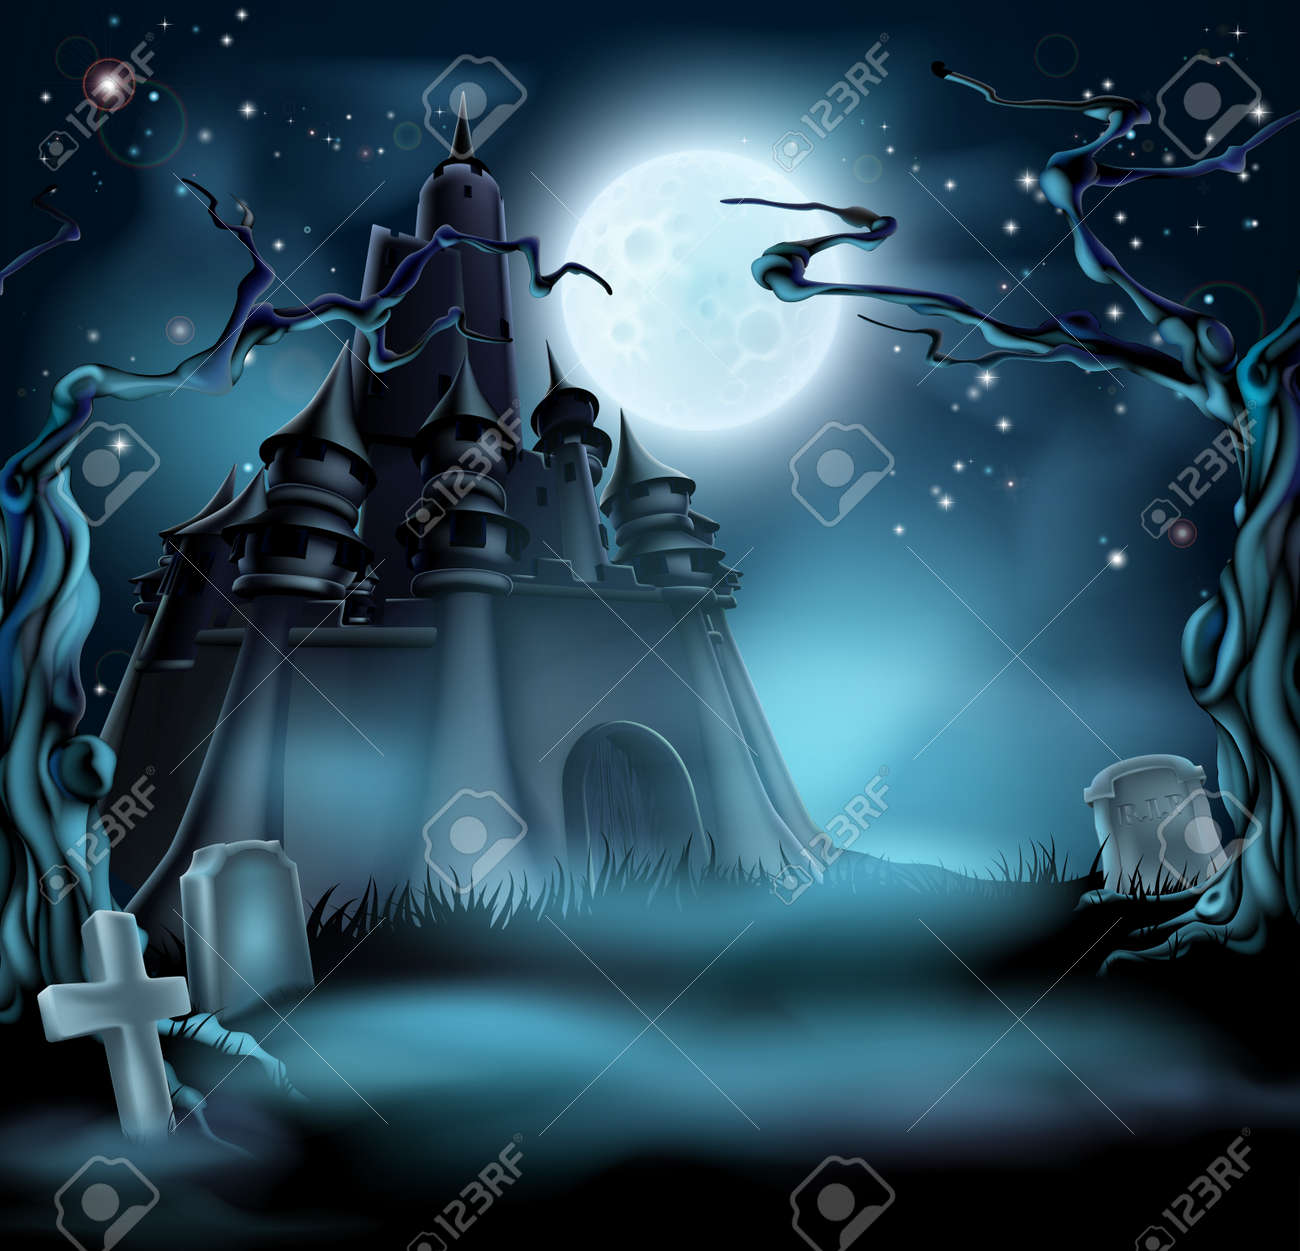 Halloween Castle Grave Yard Background With A Spooky Haunted Trees And Graves